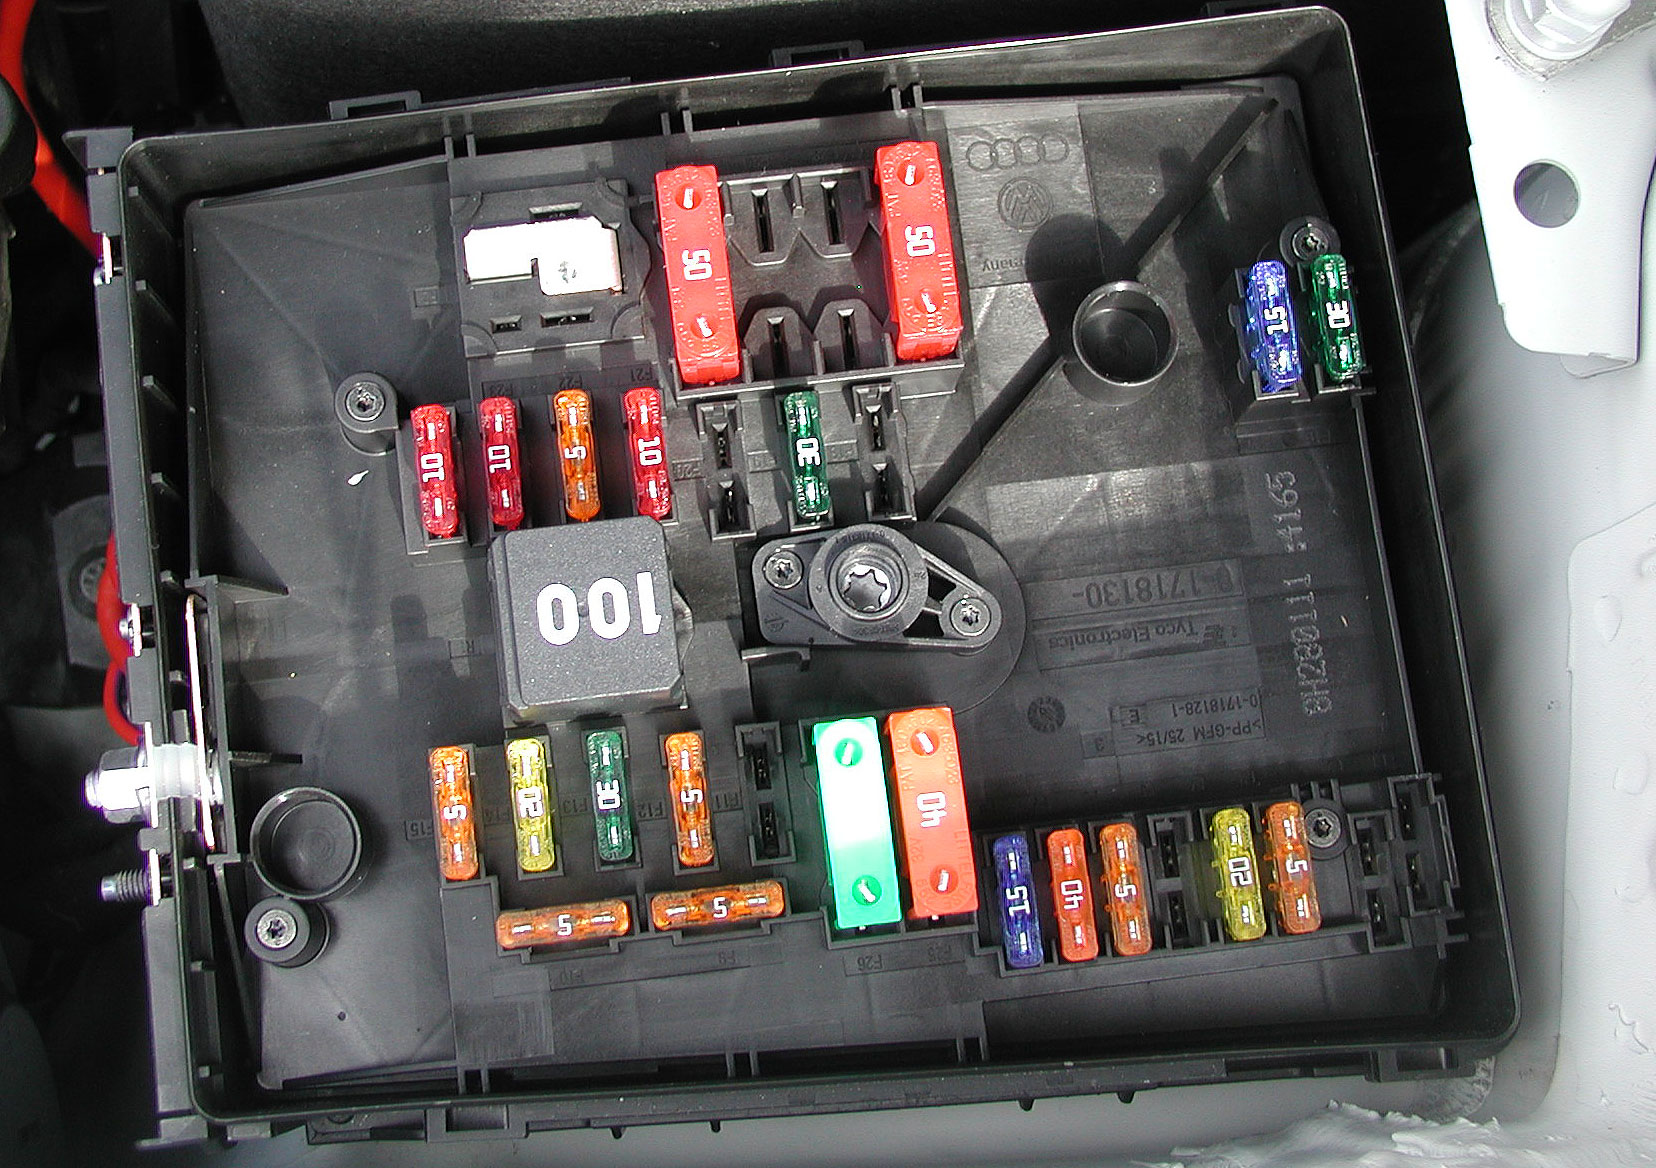 engineFuses2 golf mkv 1 9 tdi rcd 310 battery drain the volkswagen club of 2013 vw golf fuse box diagram at bakdesigns.co